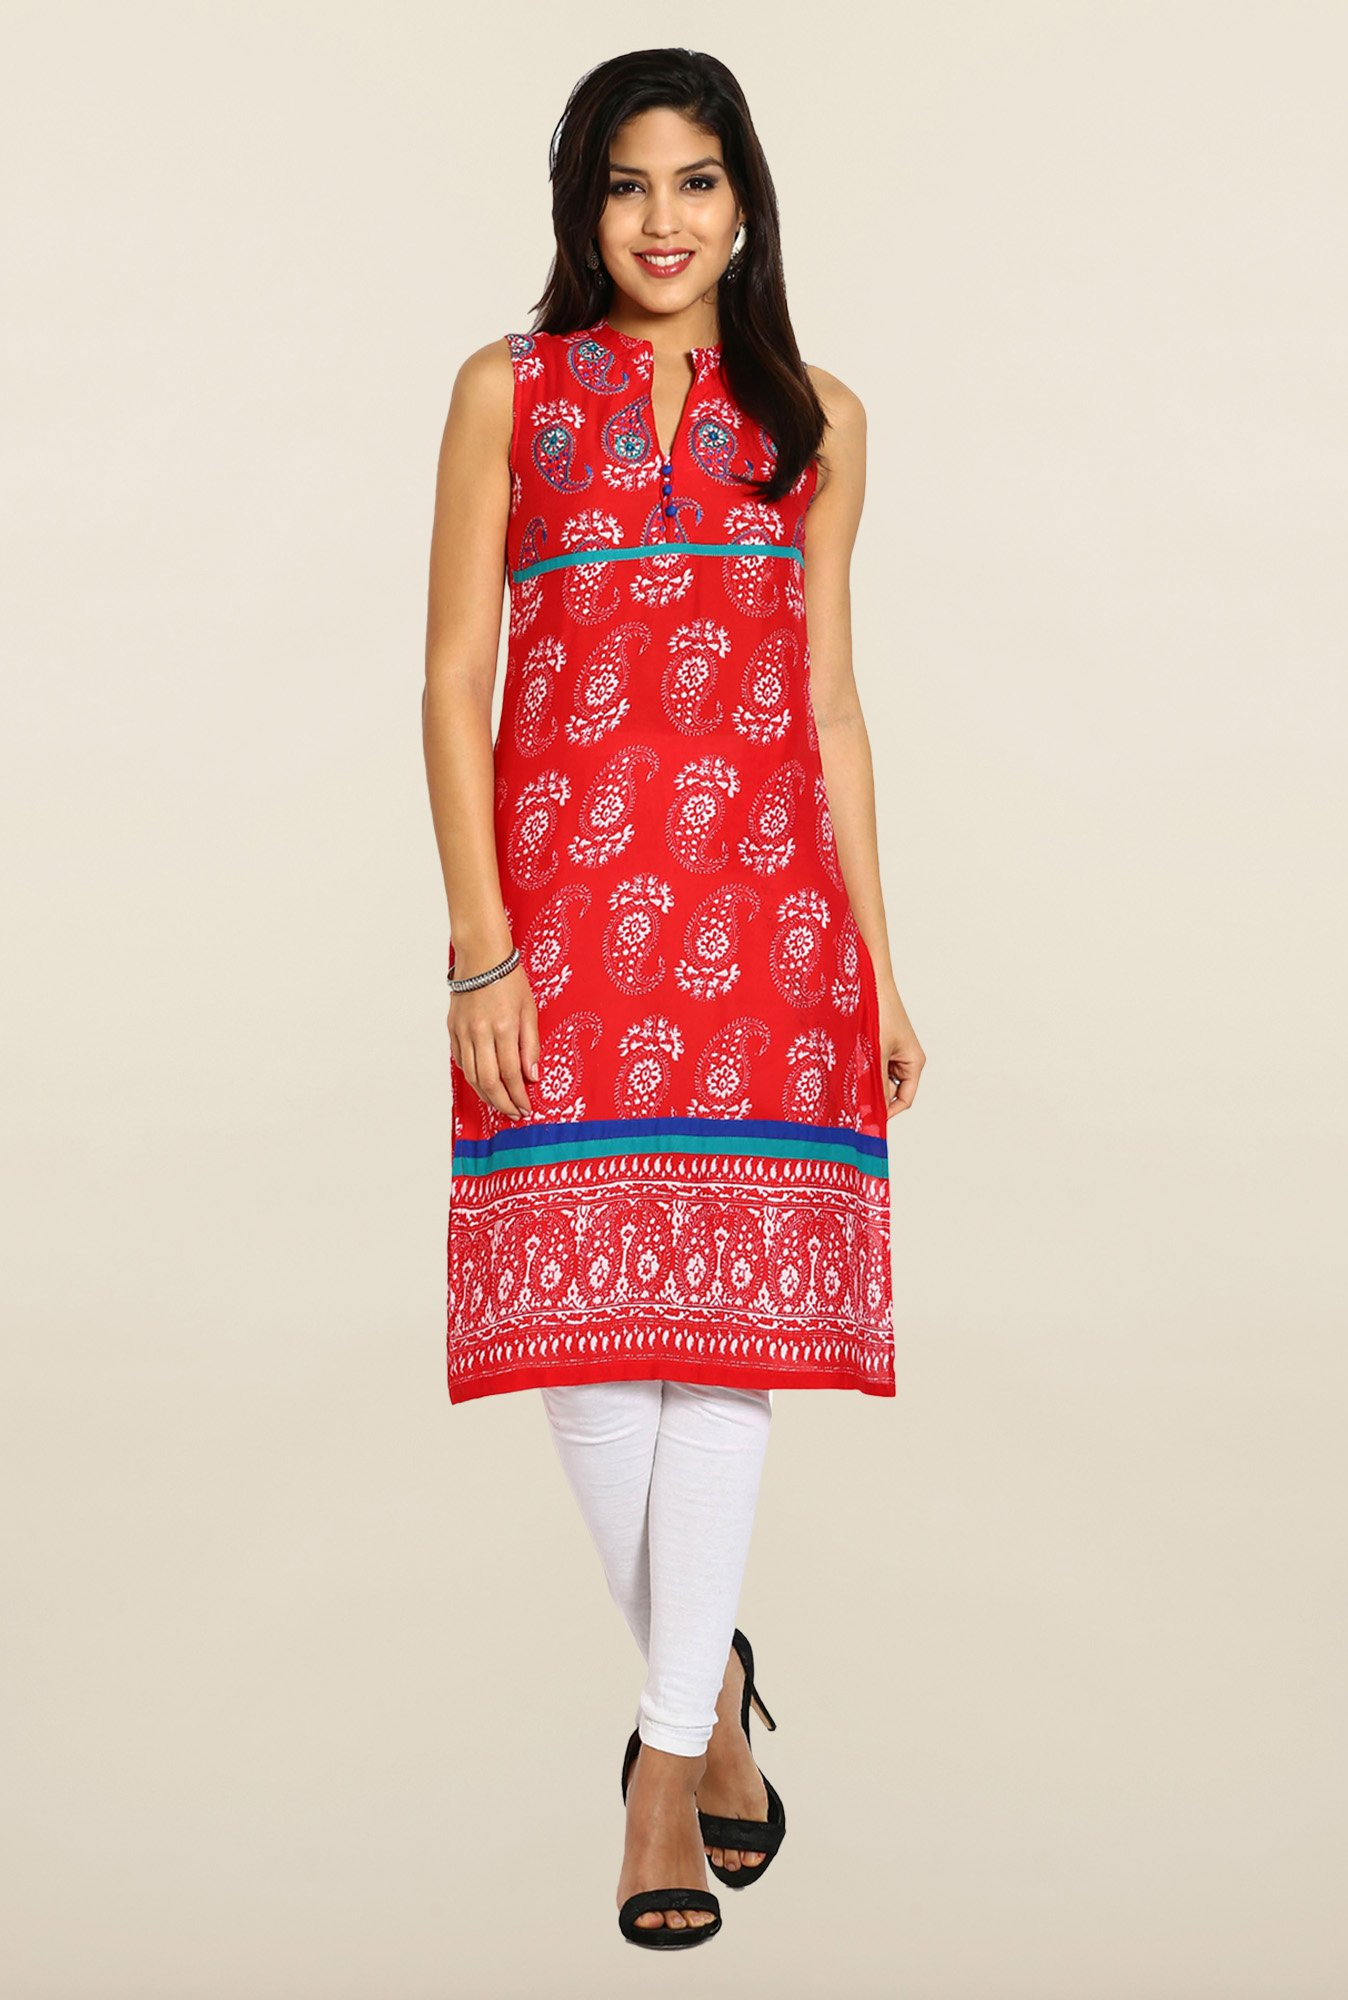 Soch Red & White Embroidered Kurta